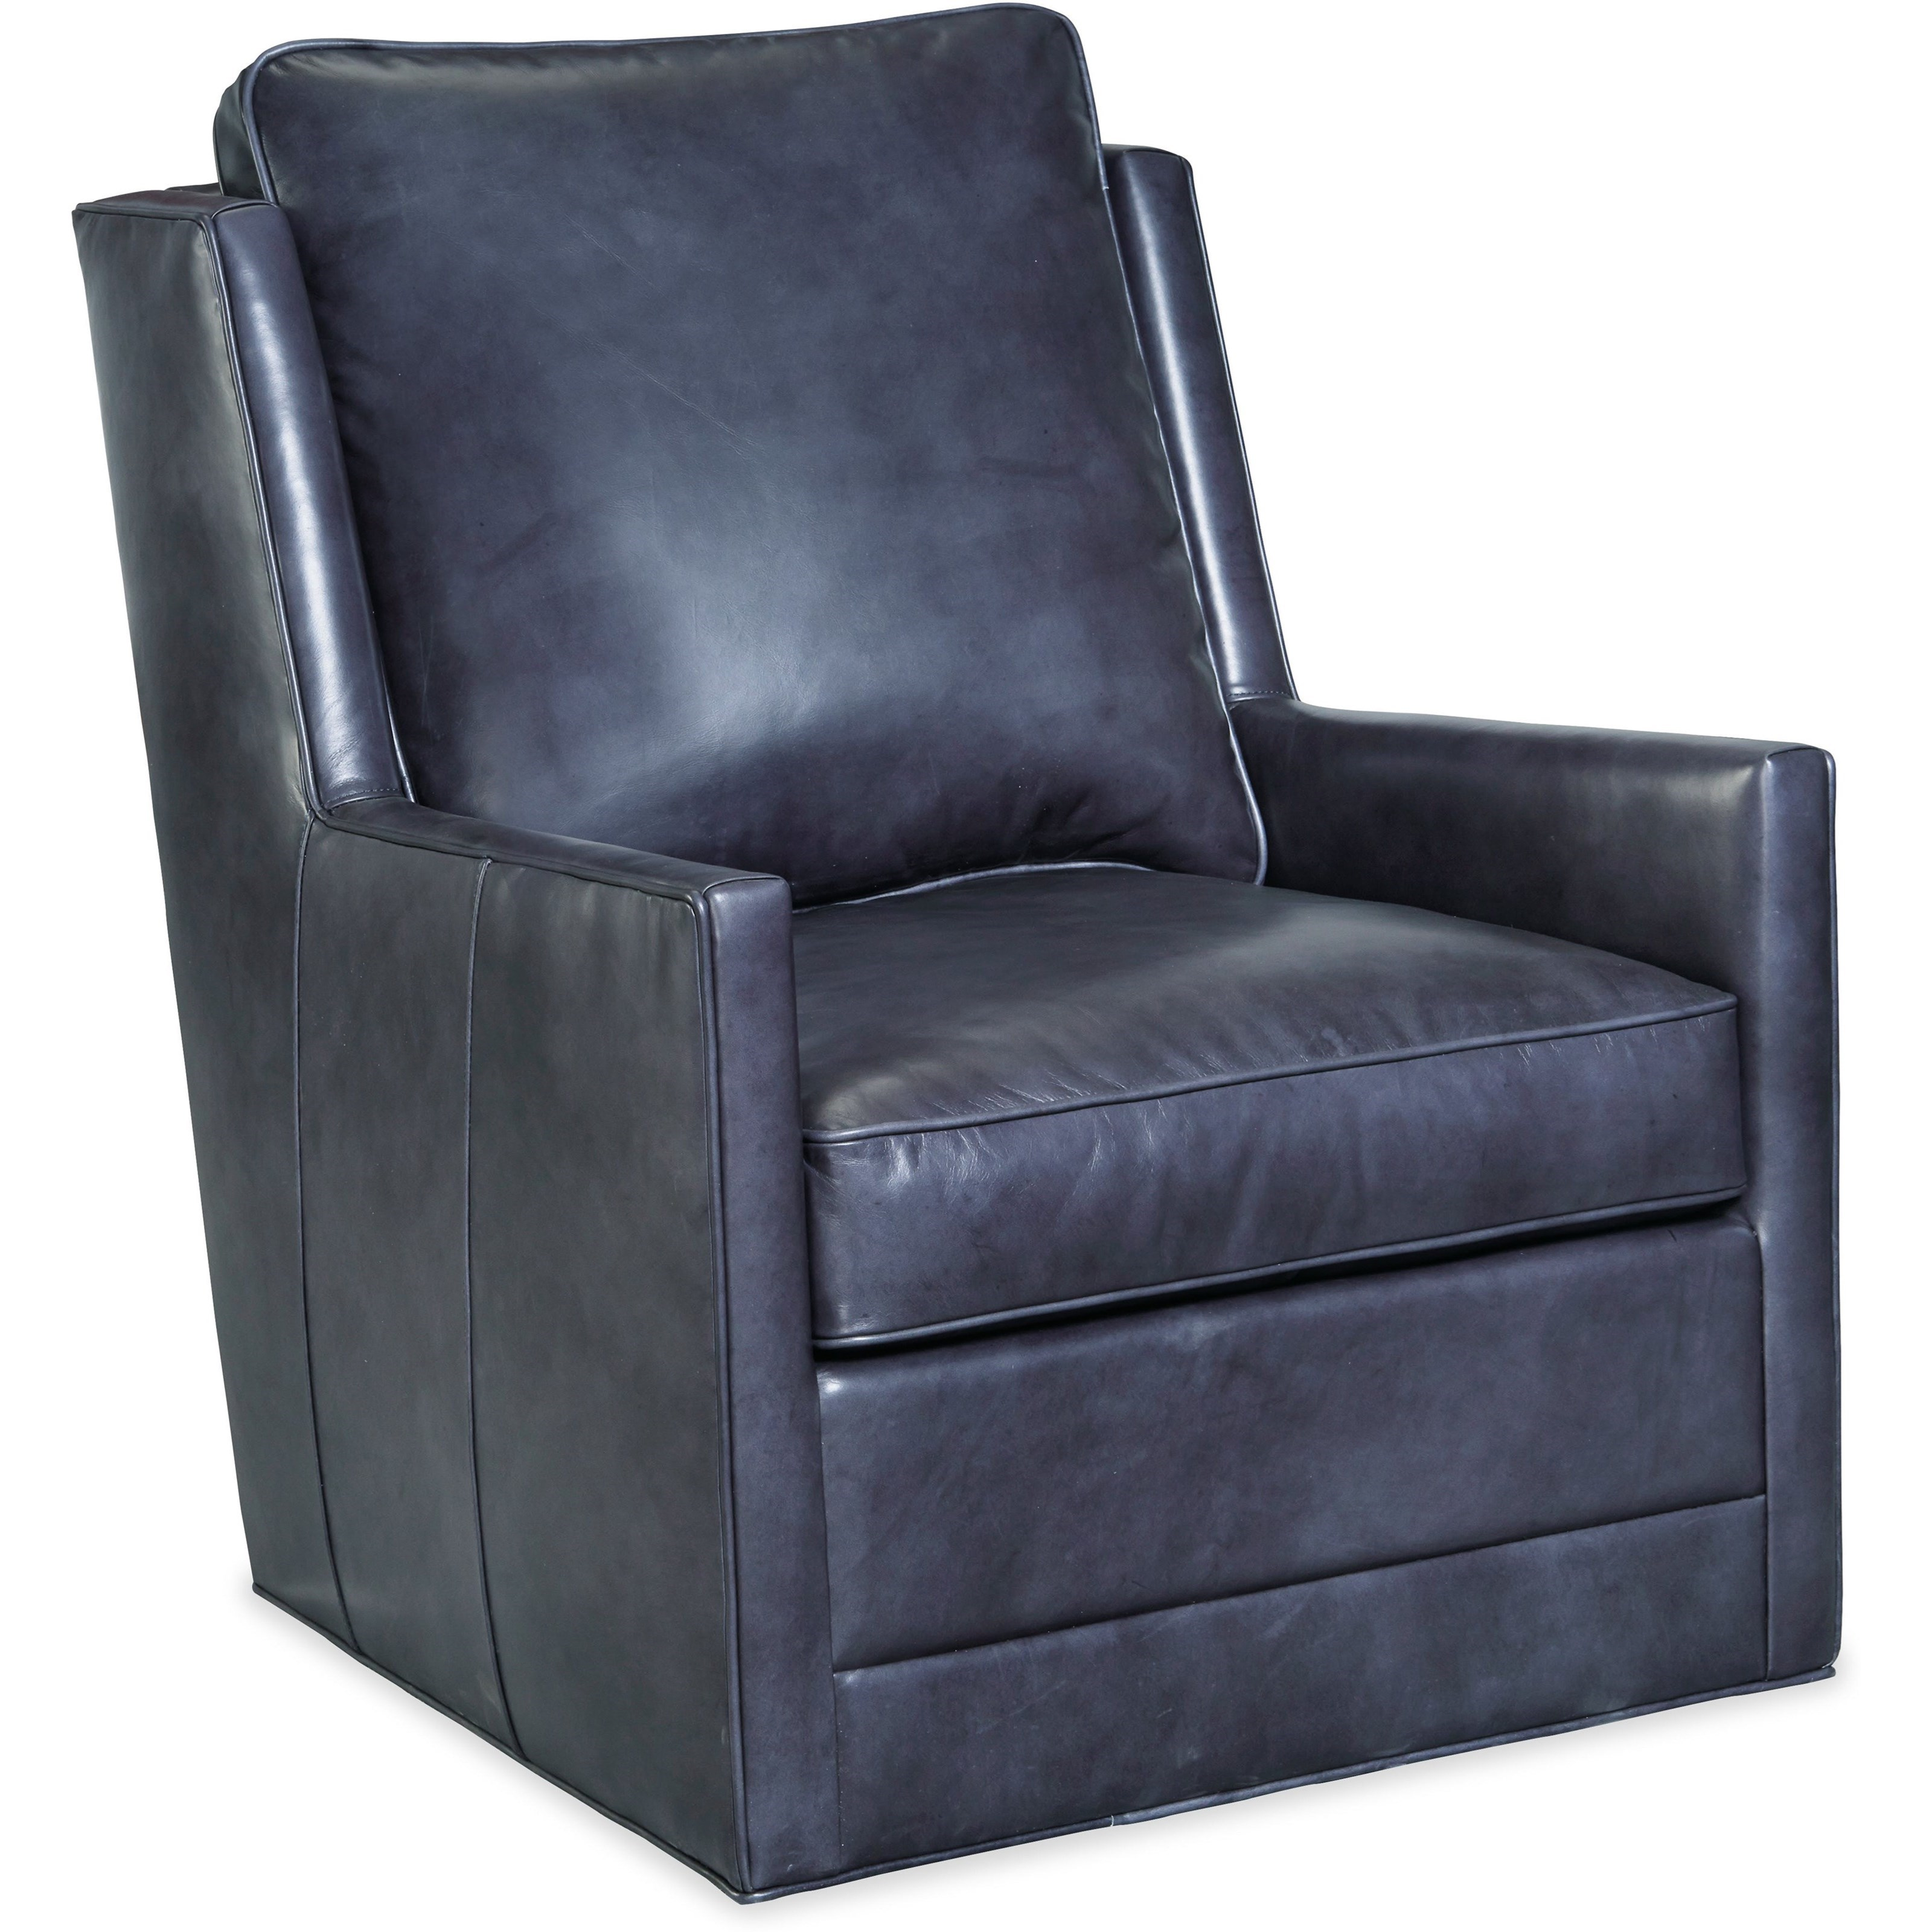 Club Chairs Keever Swivel Chair by Hooker Furniture at Stoney Creek Furniture